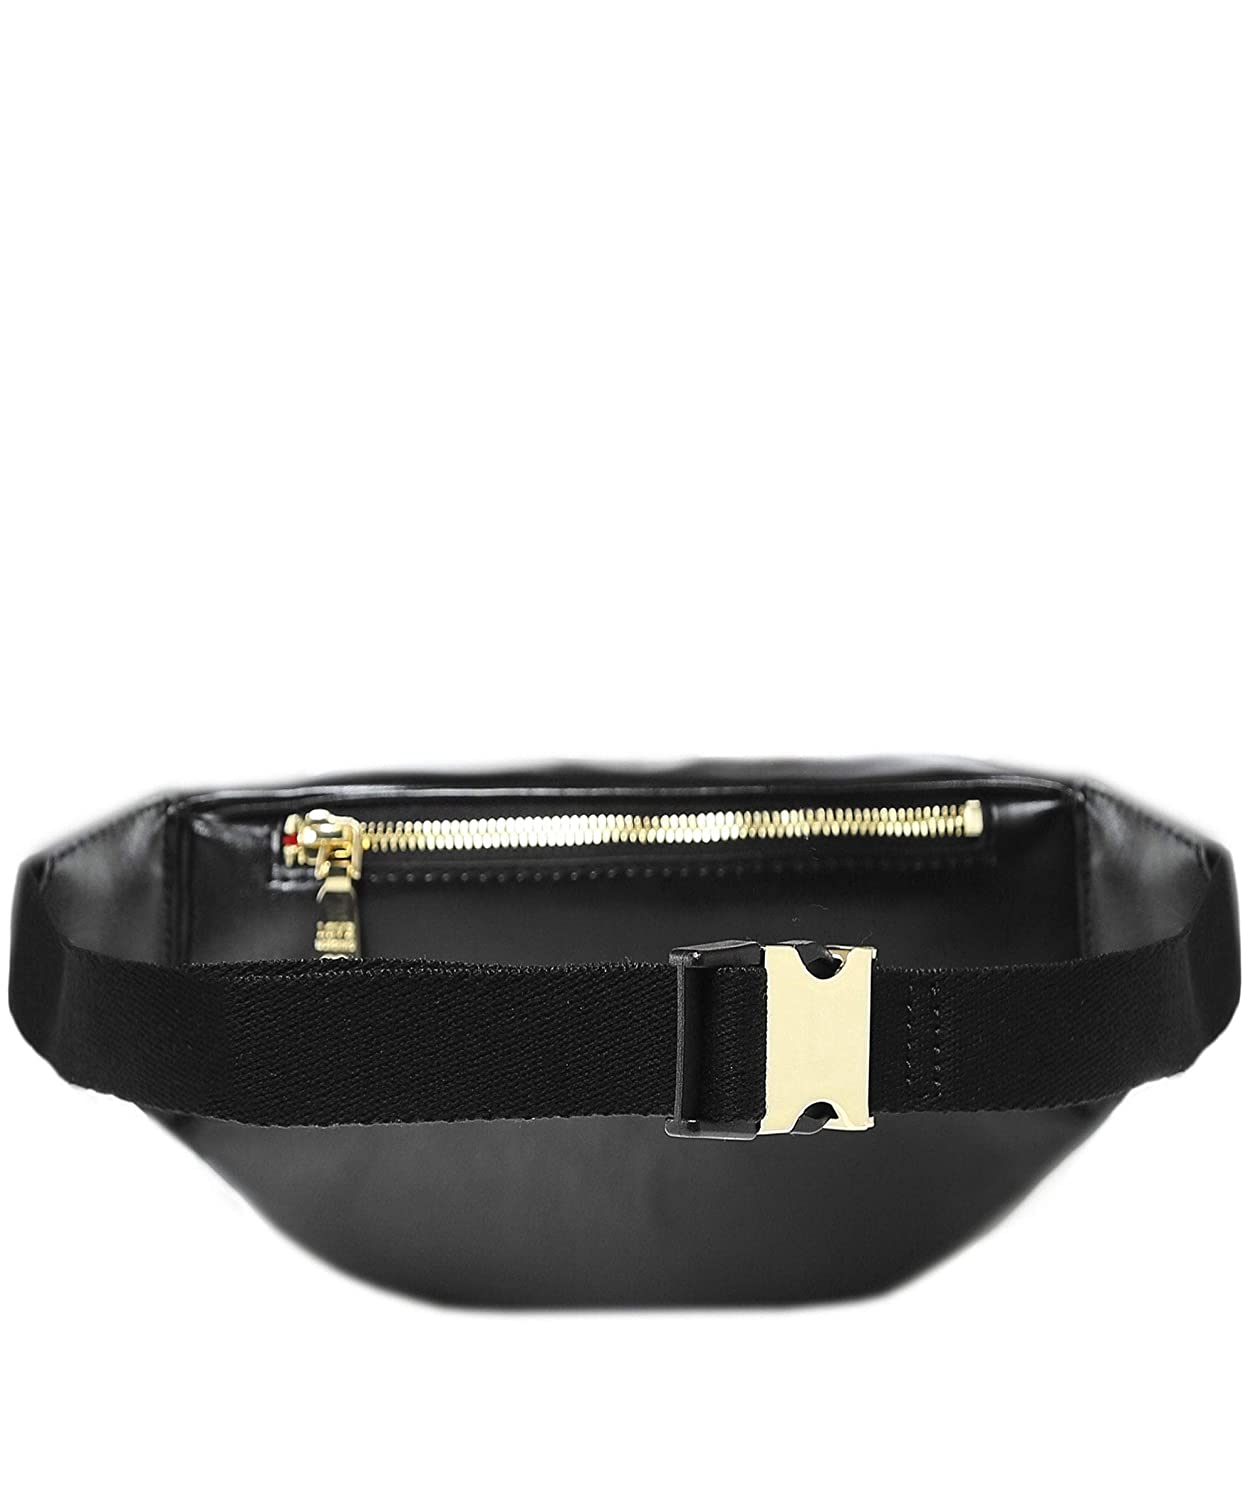 650d26eee682 Moschino Love Moschino Women s Quilted Bum Bag Black One Size   Amazon.com.au  Fashion